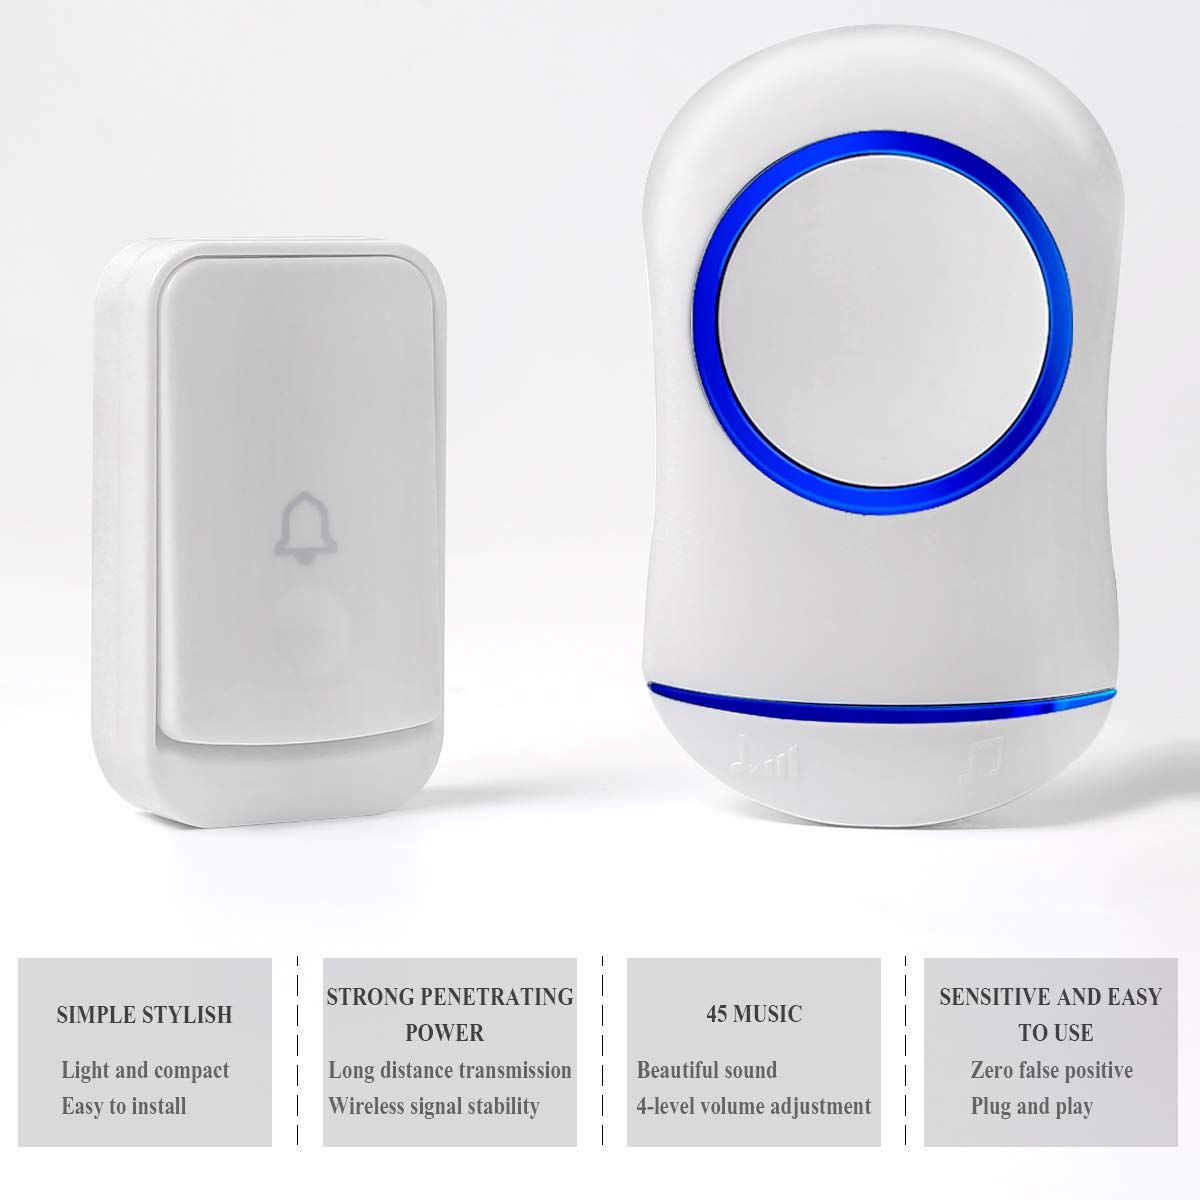 YiGooood Plug-in Push Button with 45 Chimes Work Over 656 feet 200m Electronic Remote Home Wireless Doorbell 4-Level Adjustable Volume Range